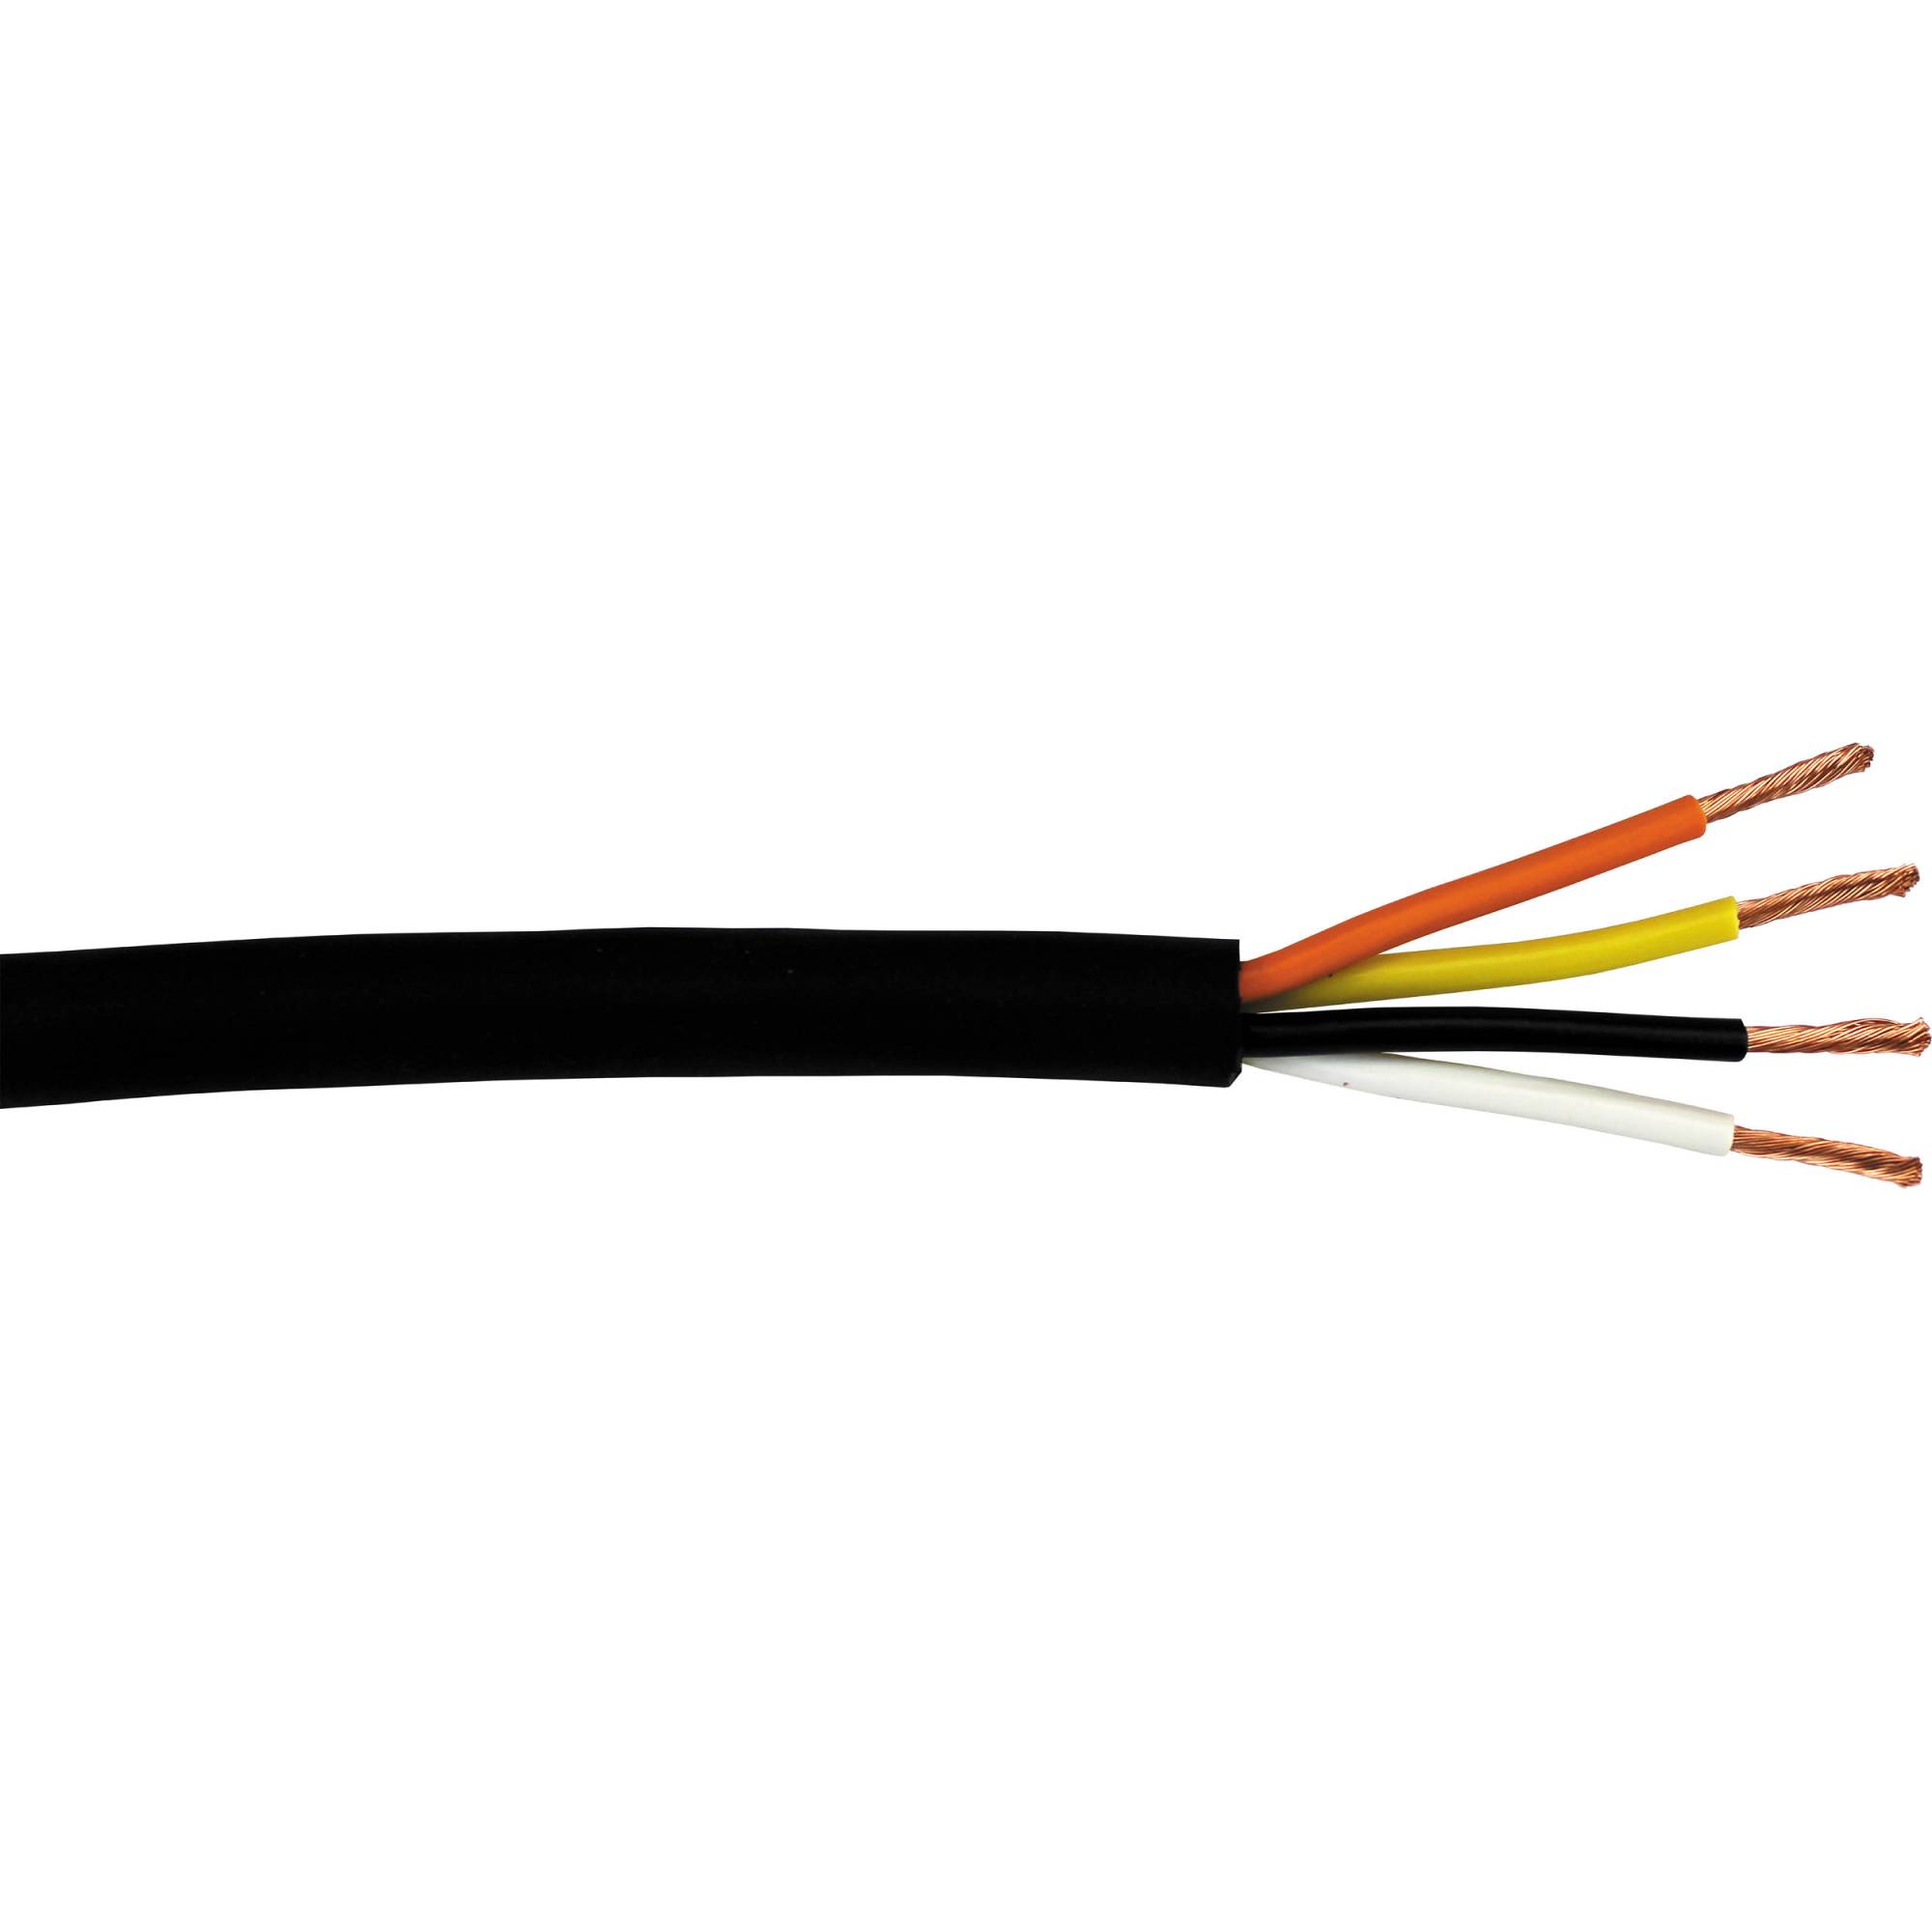 hight resolution of rapcohorizon speaker4 4 conductor 13 awg stranded bare copper unshielded speaker wire 250